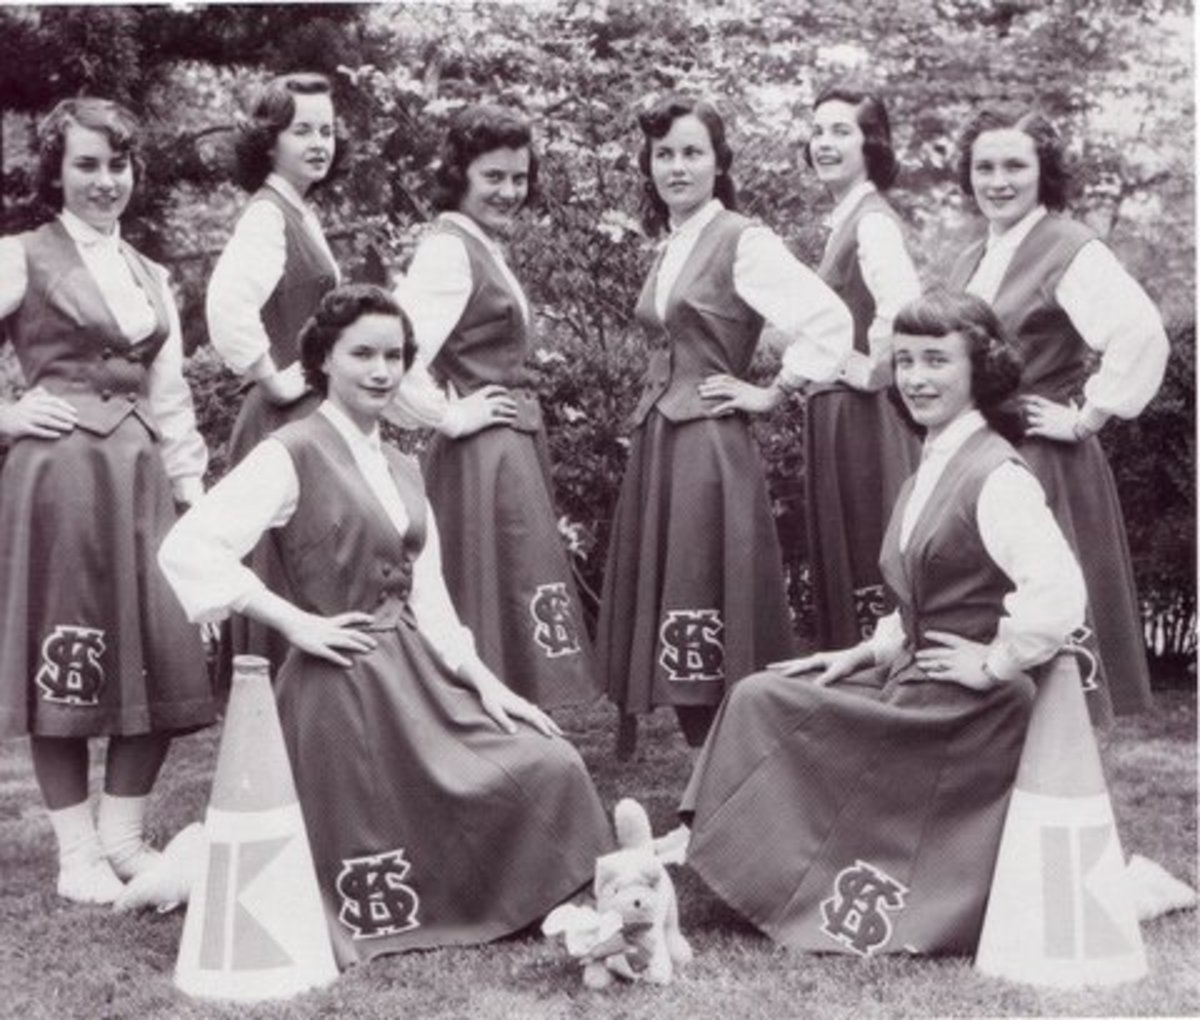 A Brief History Of Cheerleading Cheerleaders And Their